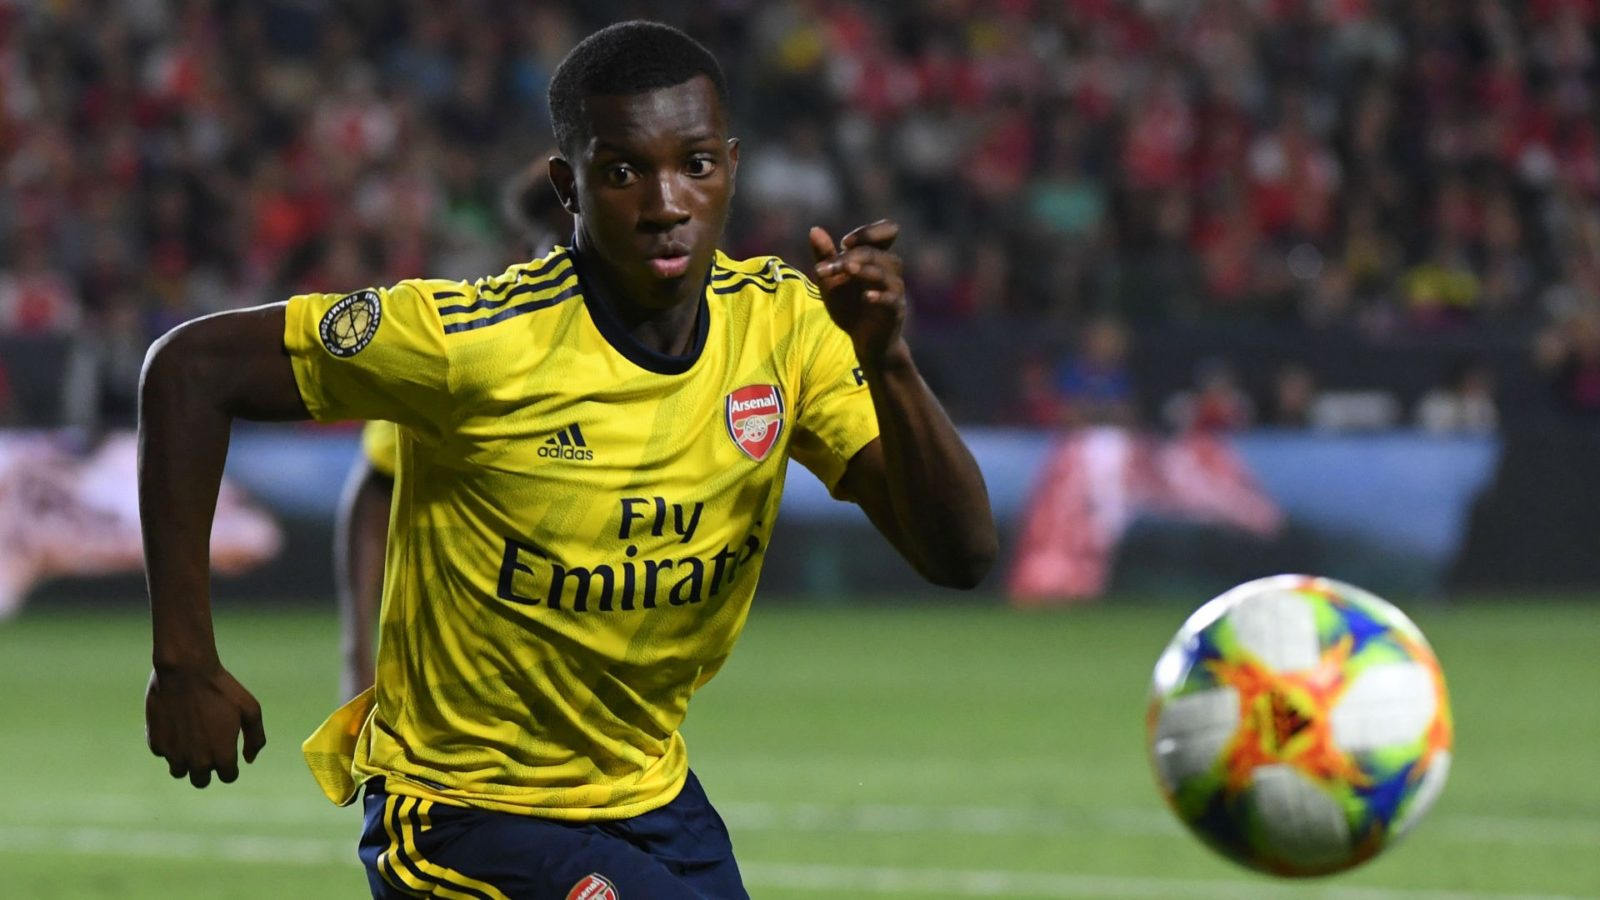 nketiah-to-remain-at-arsenal-after-impressing-arteta-despite-championship-loan-offers